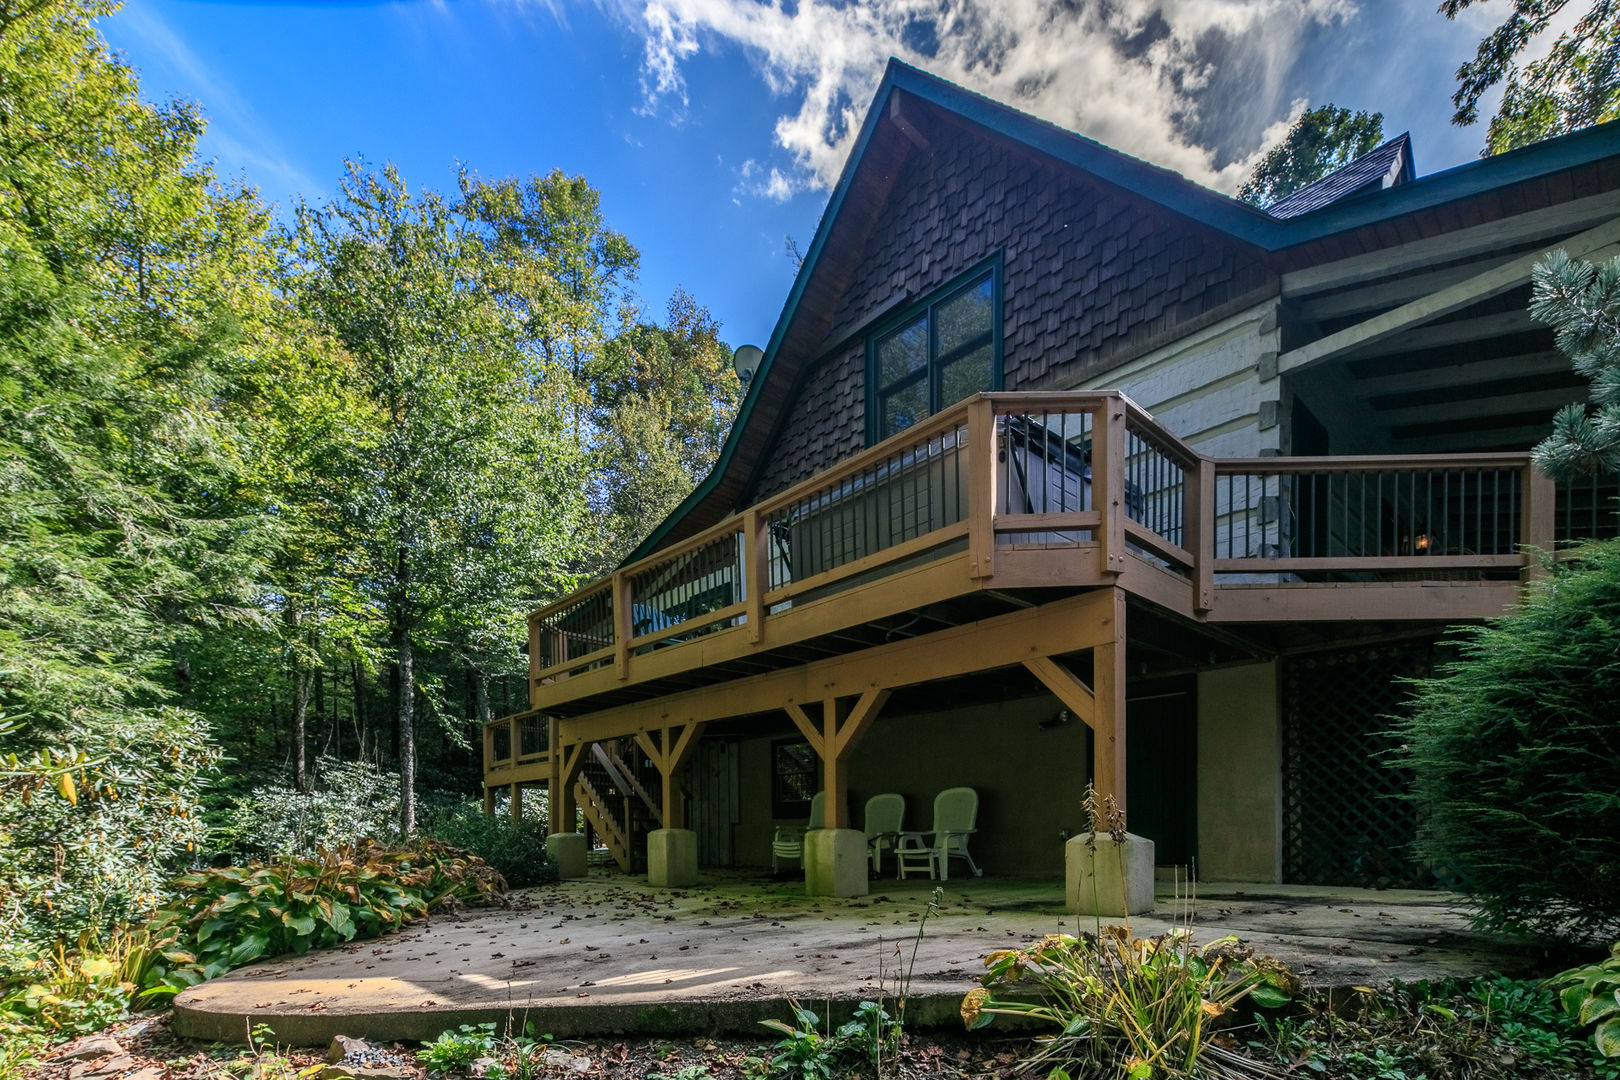 The porch wraps around the home. Almost Perfect in Blowing Rock, NC.